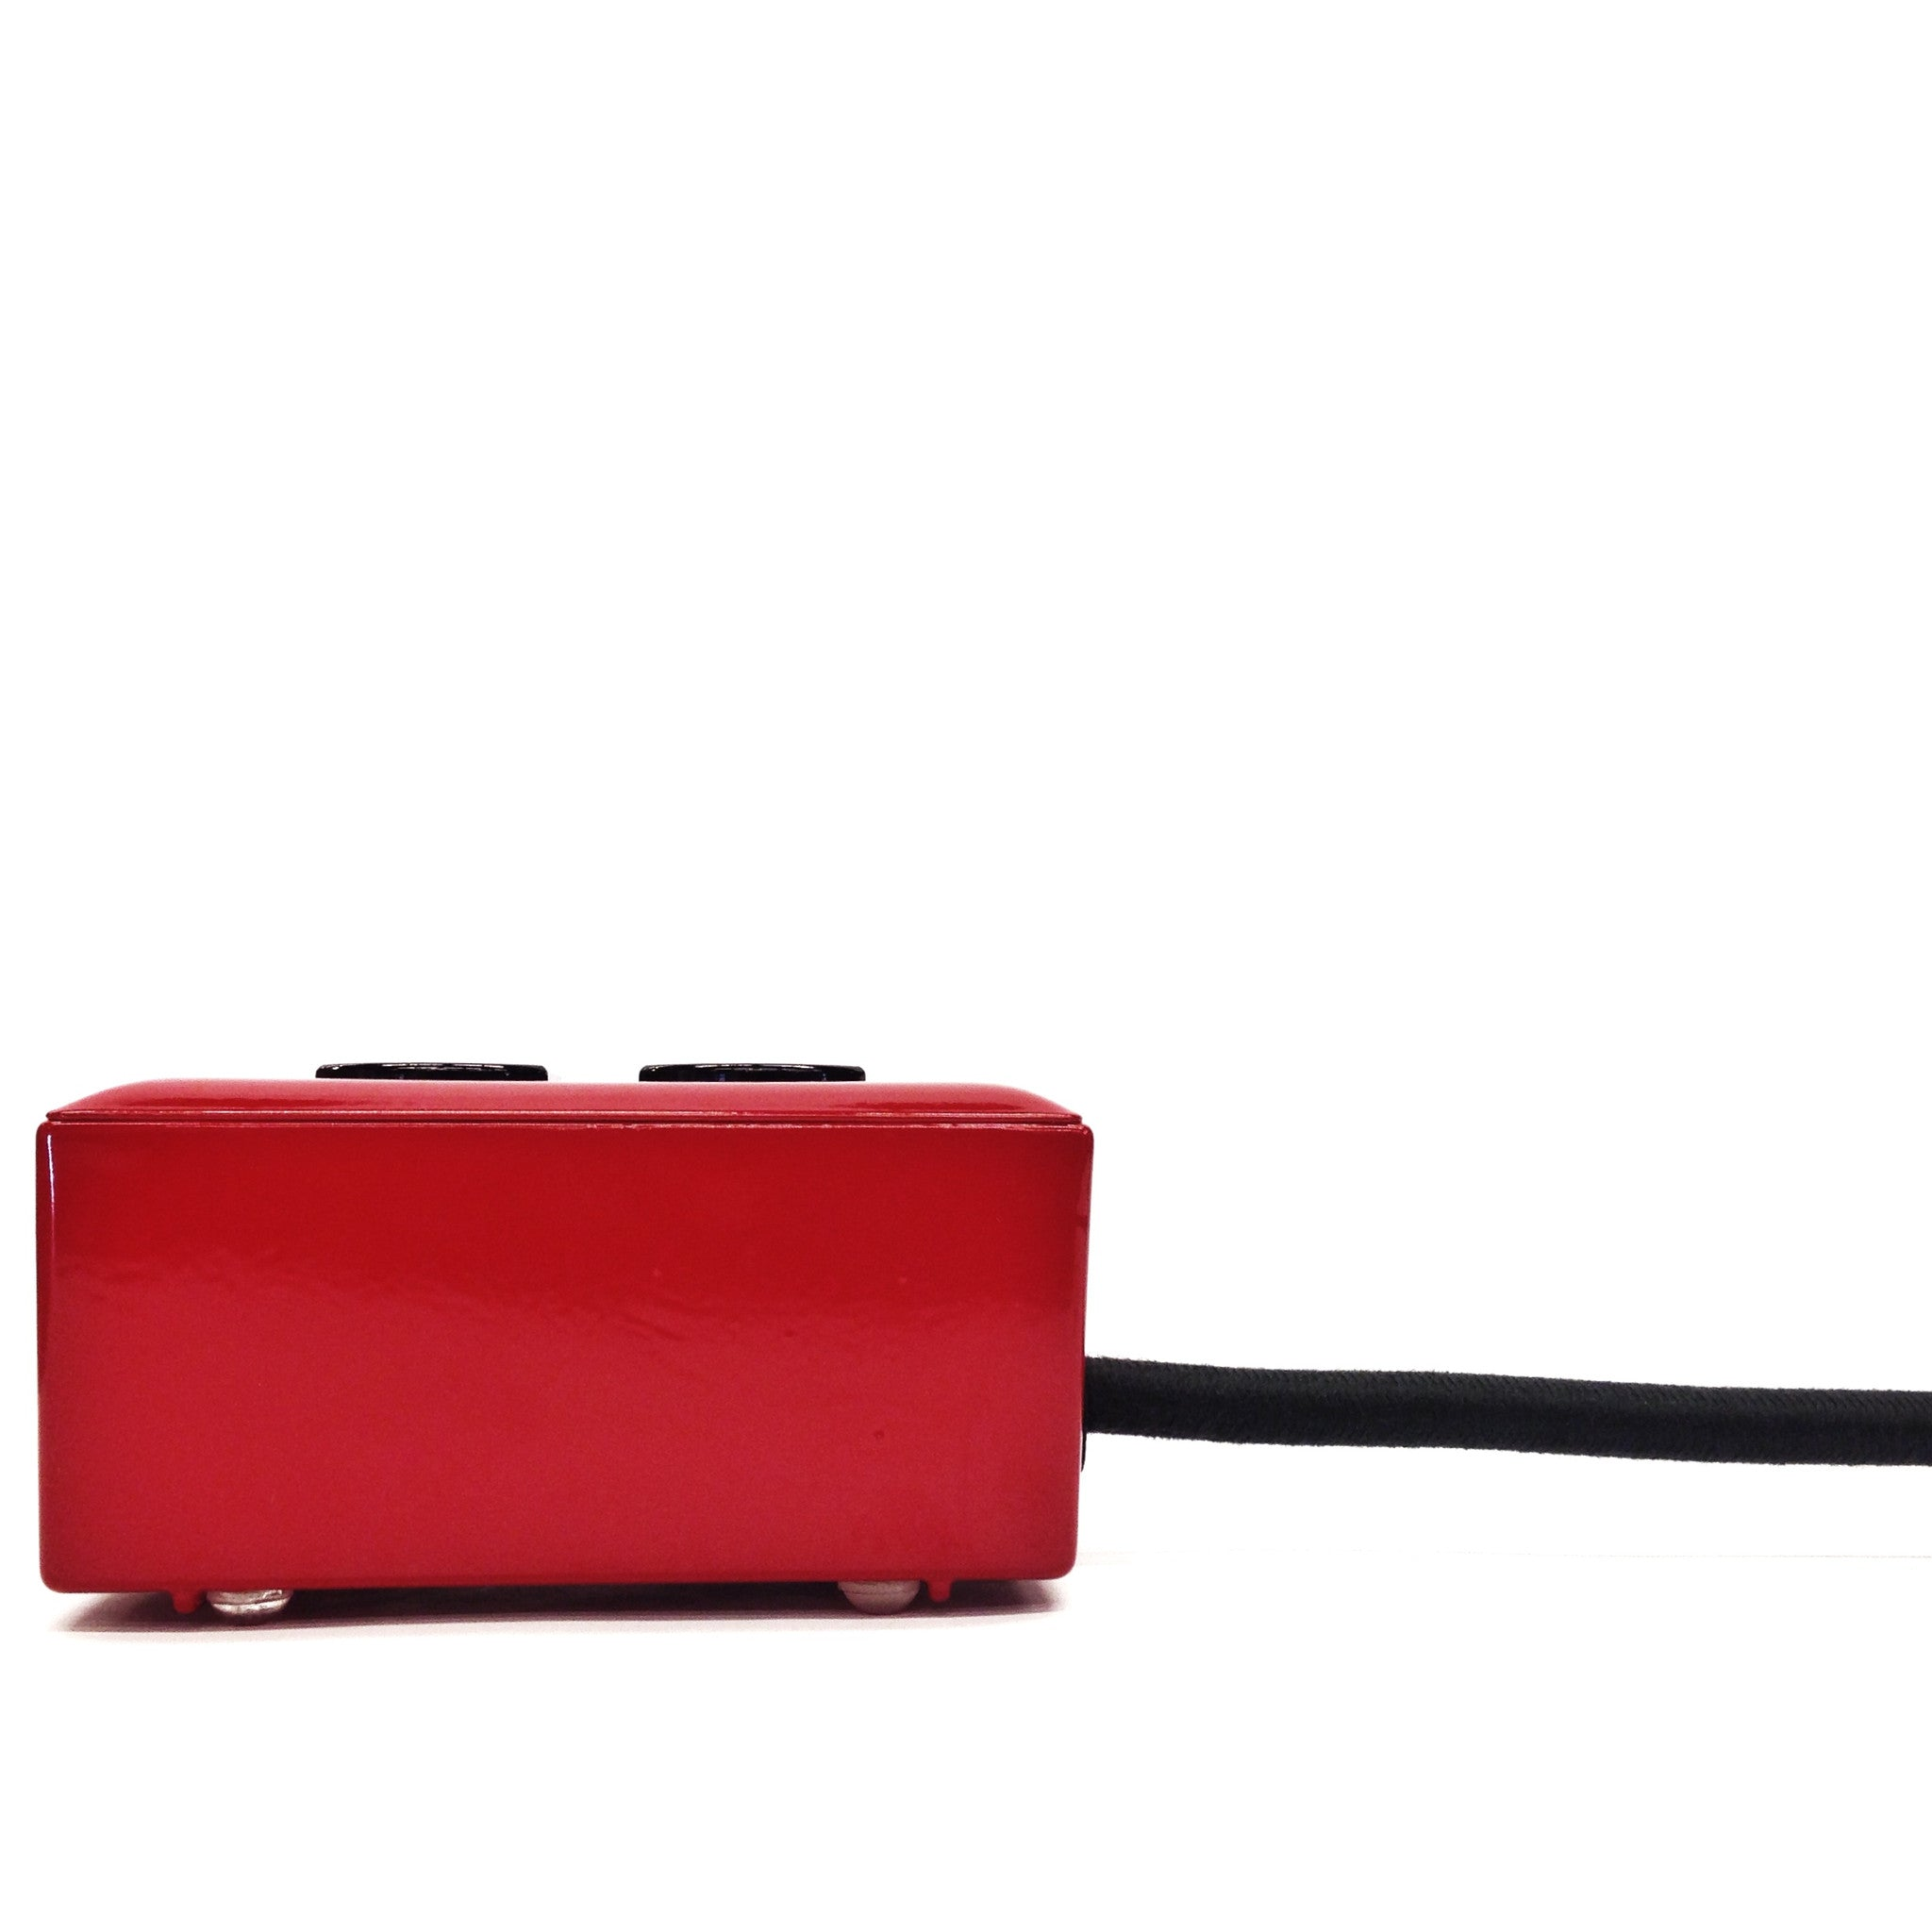 Extō Charcoal Red - A Modern Dual-Tamper-Resistant Outlet, 15-AMP Extension Cord